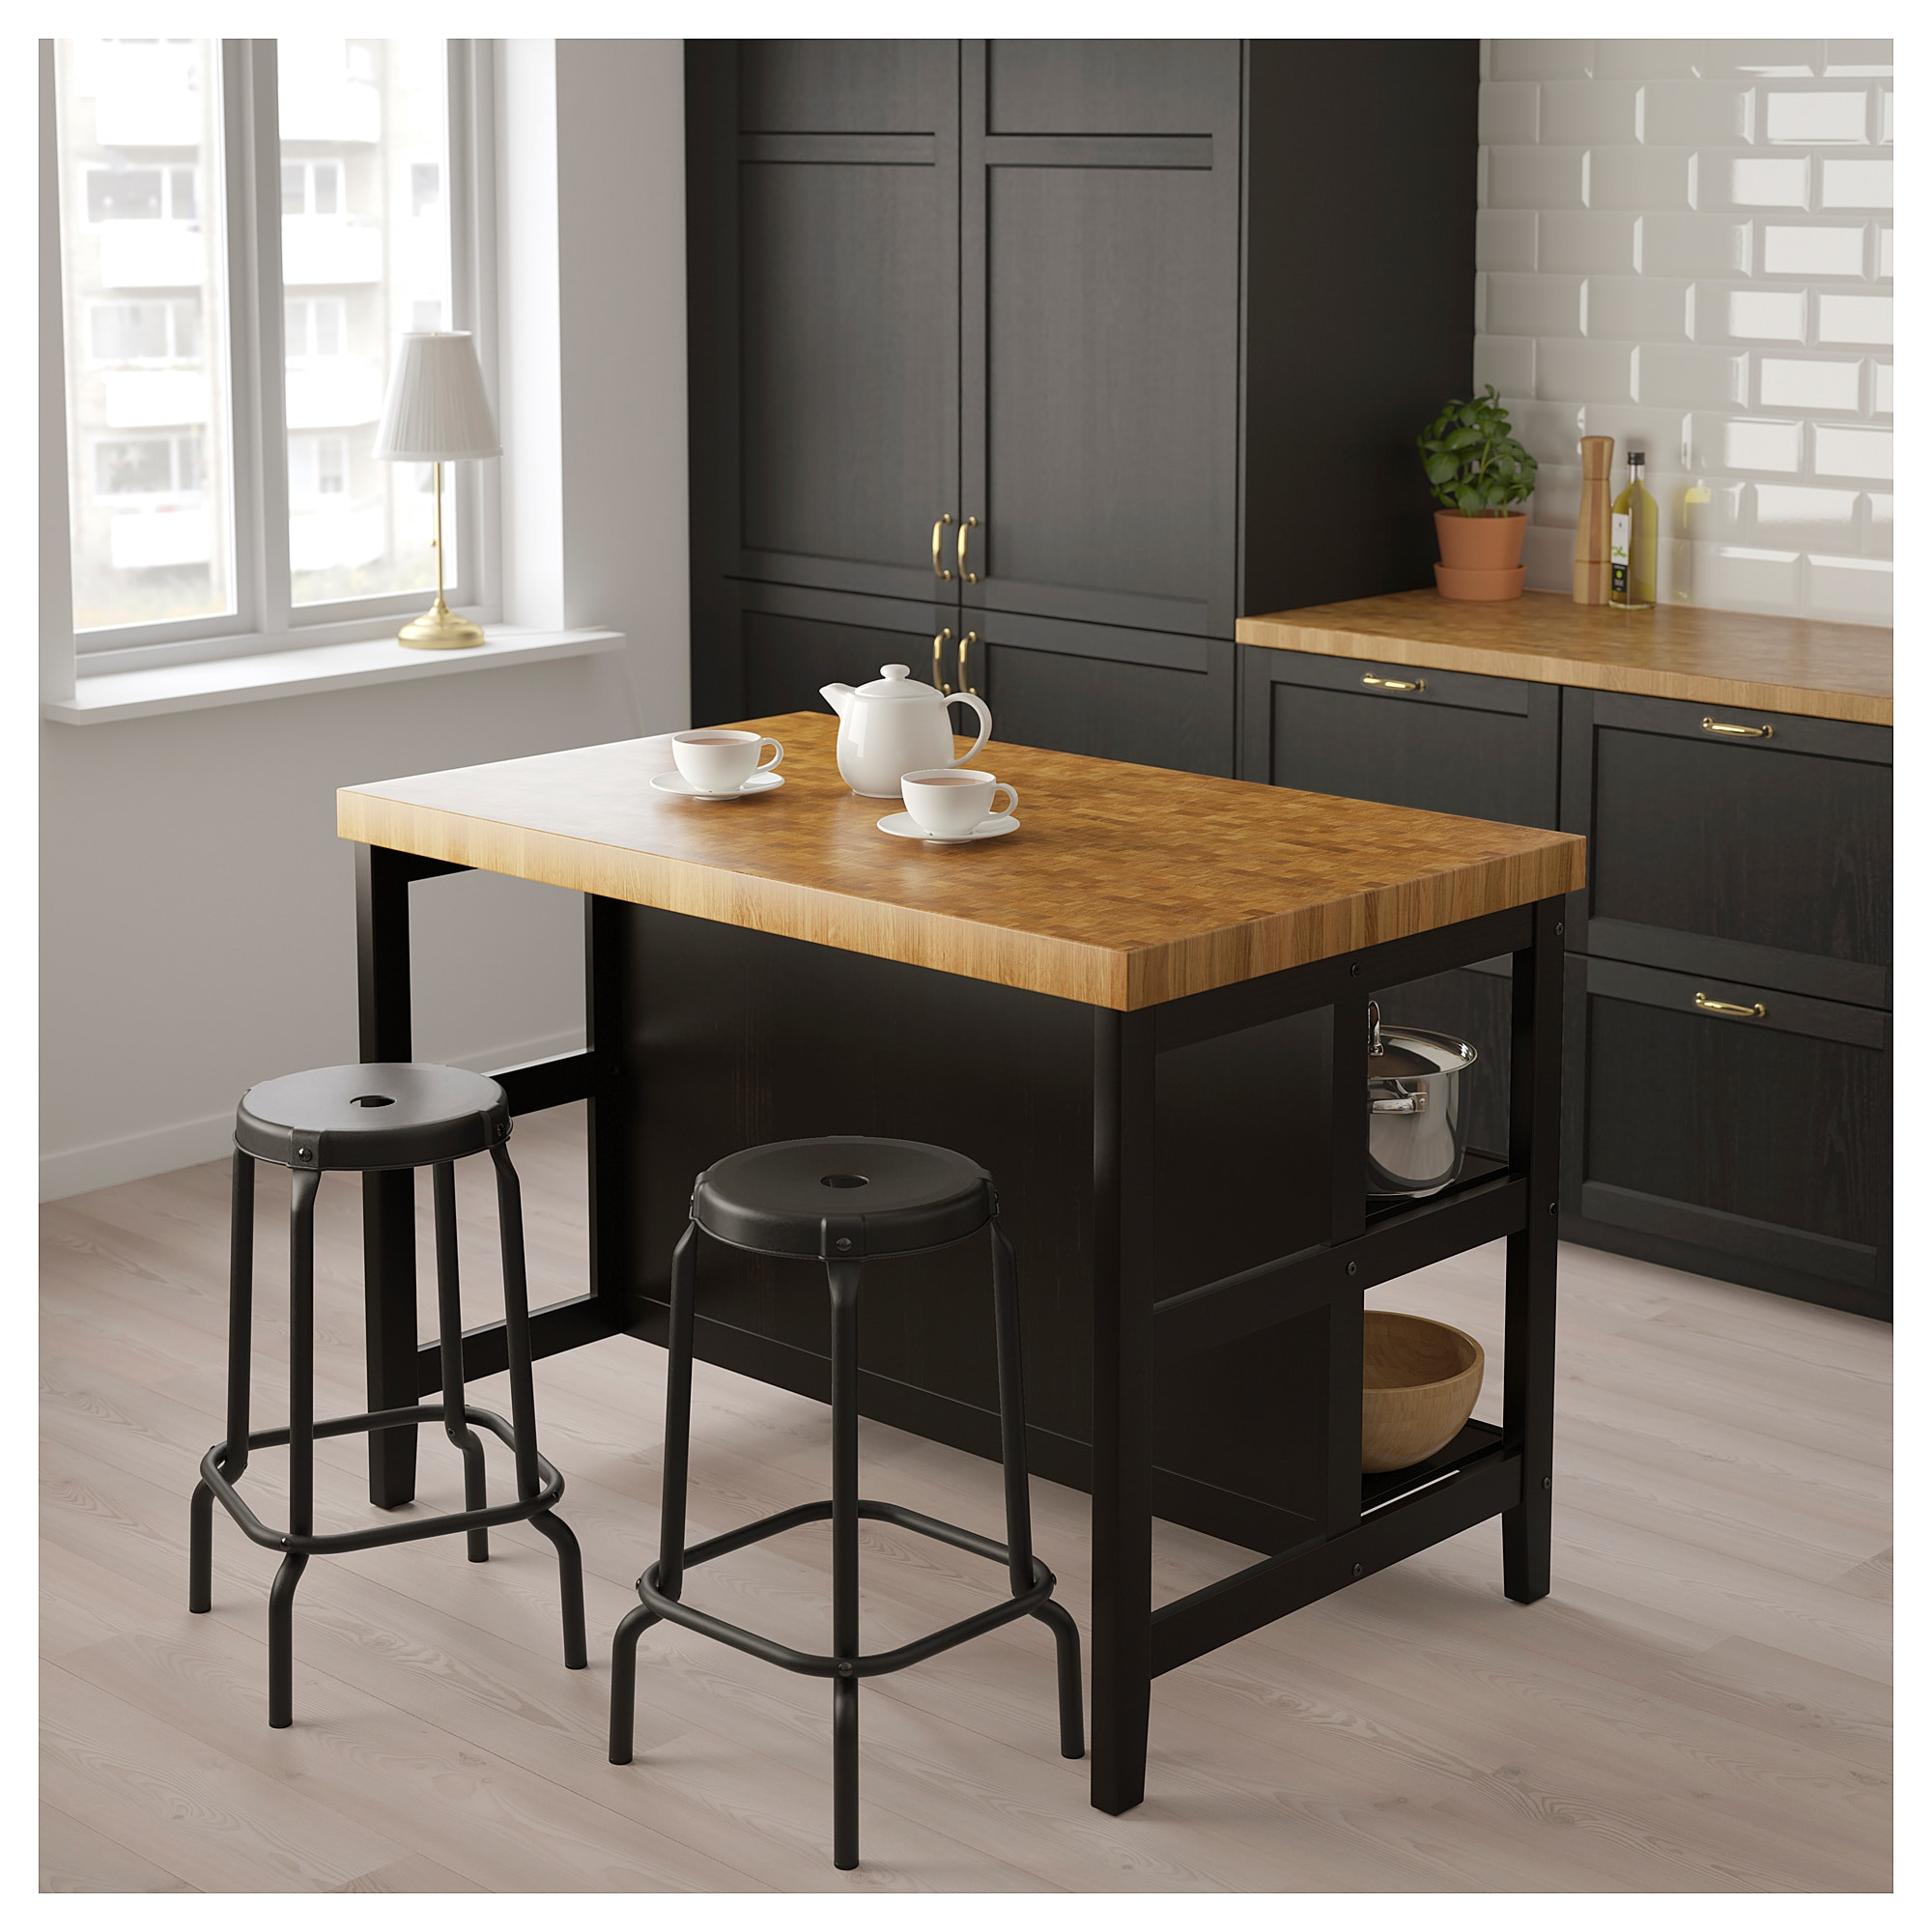 Best Vadholma Kitchen Island Black Oak 49 5 8X31 1 8X35 3 8 400 x 300